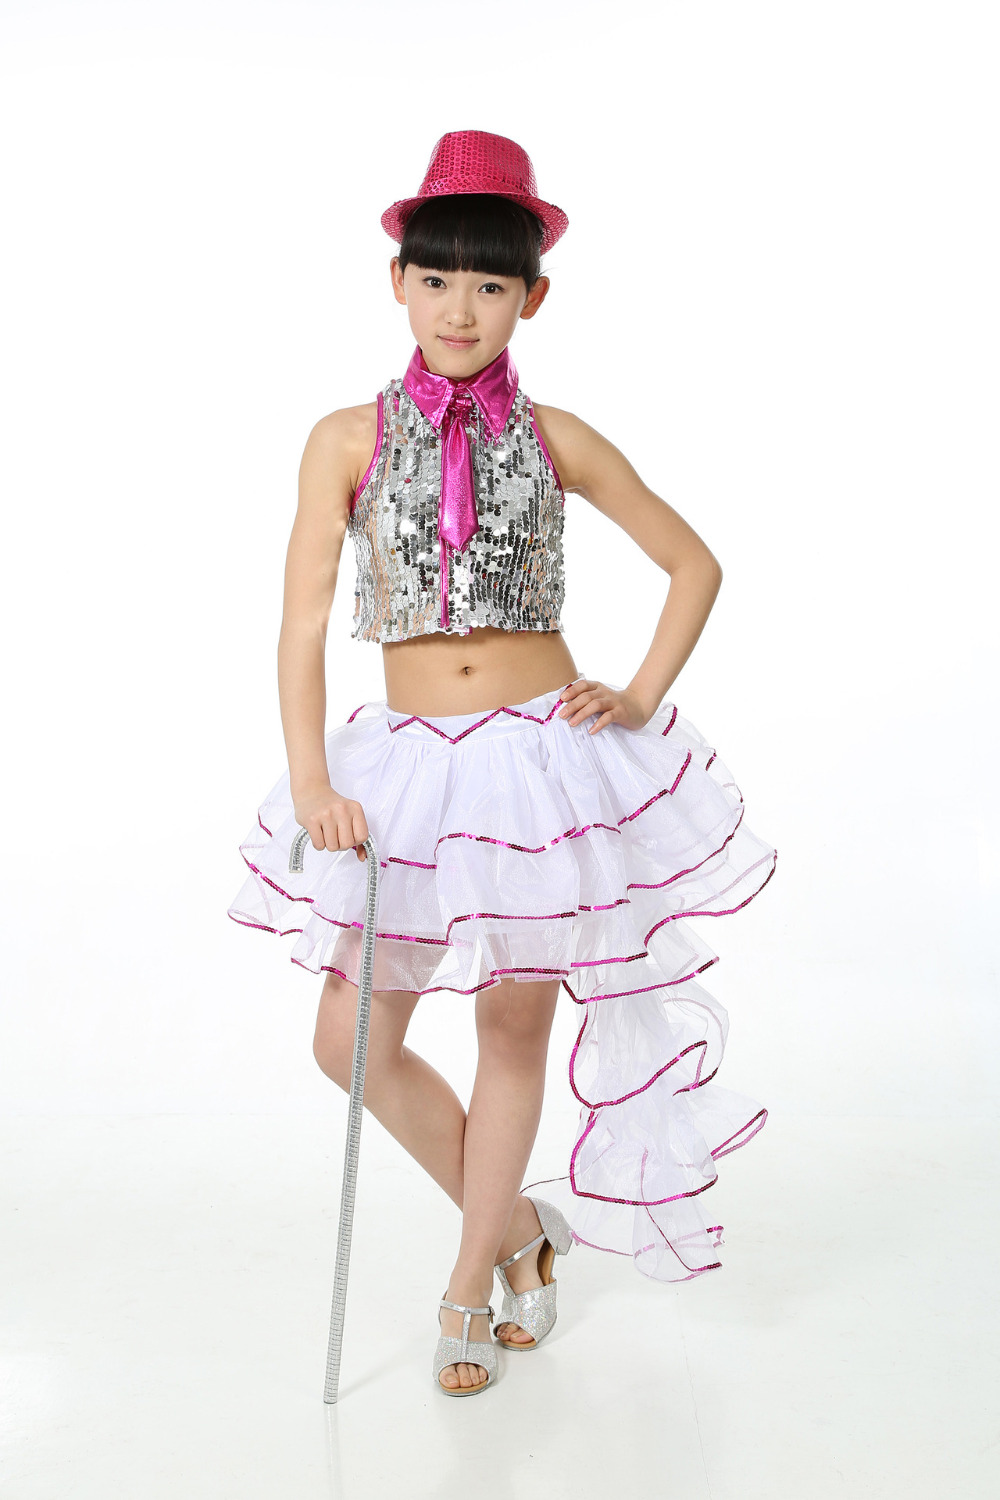 5-15Y Children Sequin Jazz Top & Tuxedo Skirts Girls Vestido Lentejuelas Kids Modern Dance Clothes Latin Stage Show Costume Wear